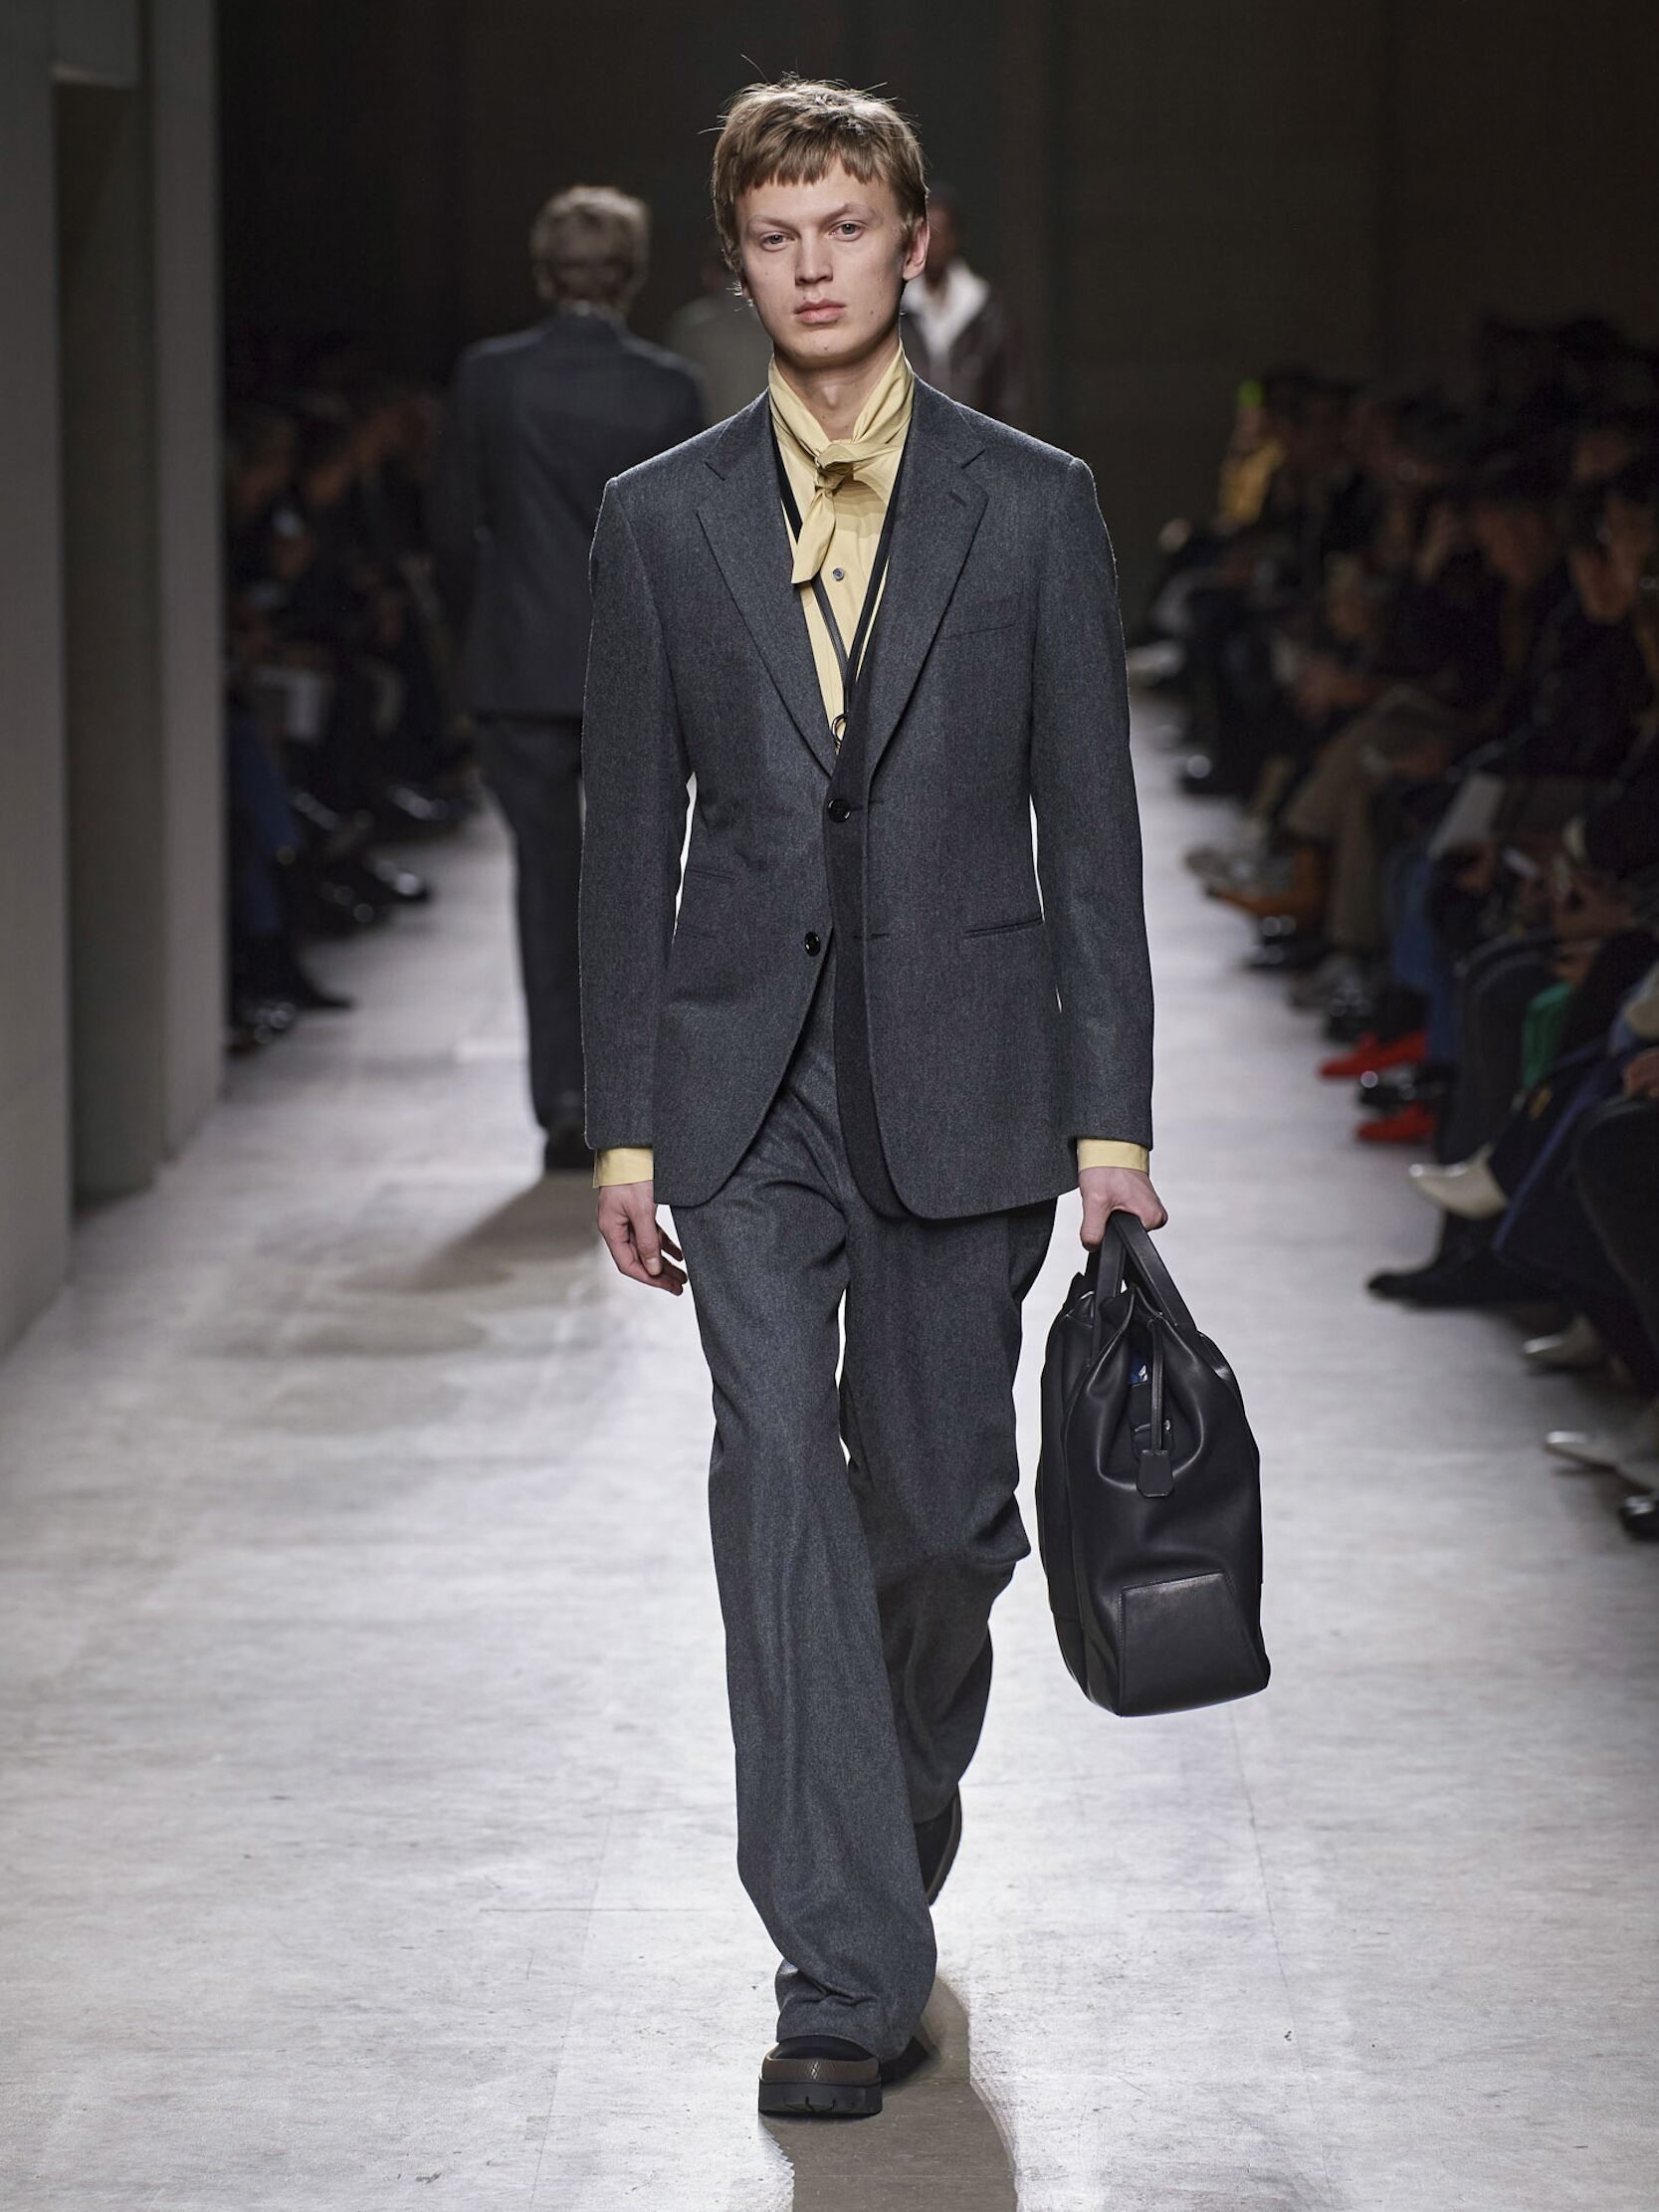 Hermès Menswear Fashion Show